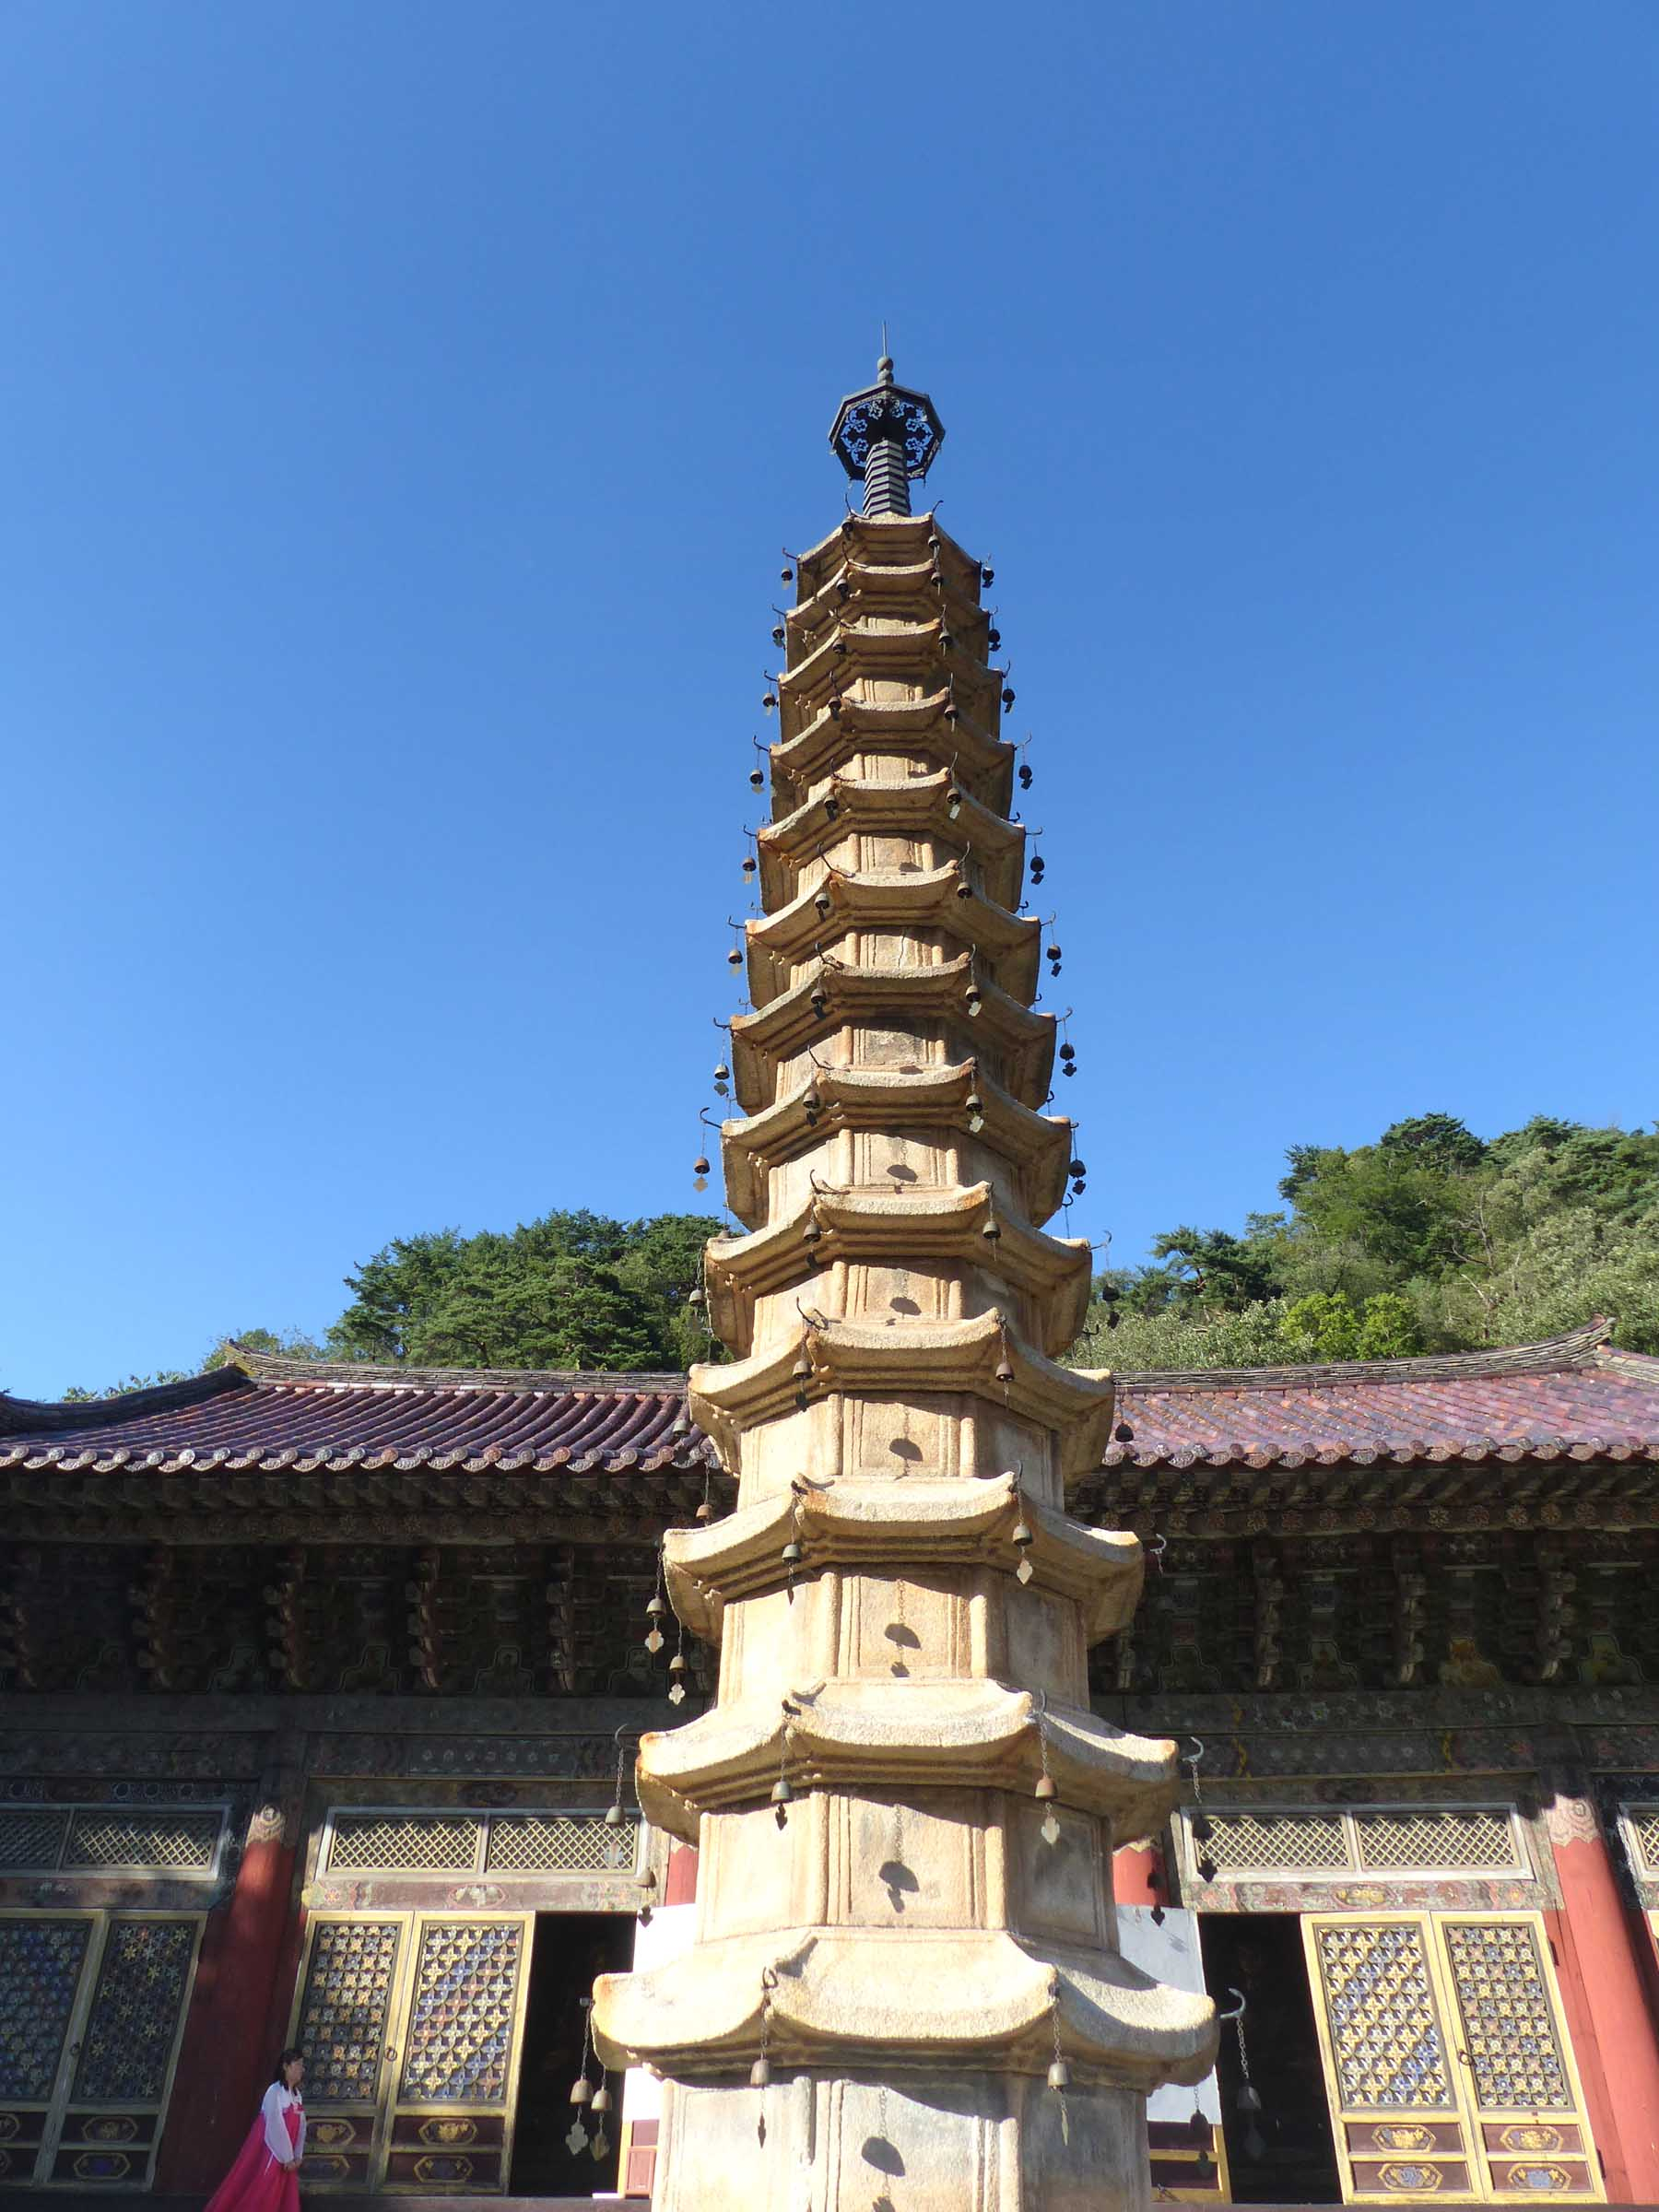 Tall stone pagoda in front of a temple building